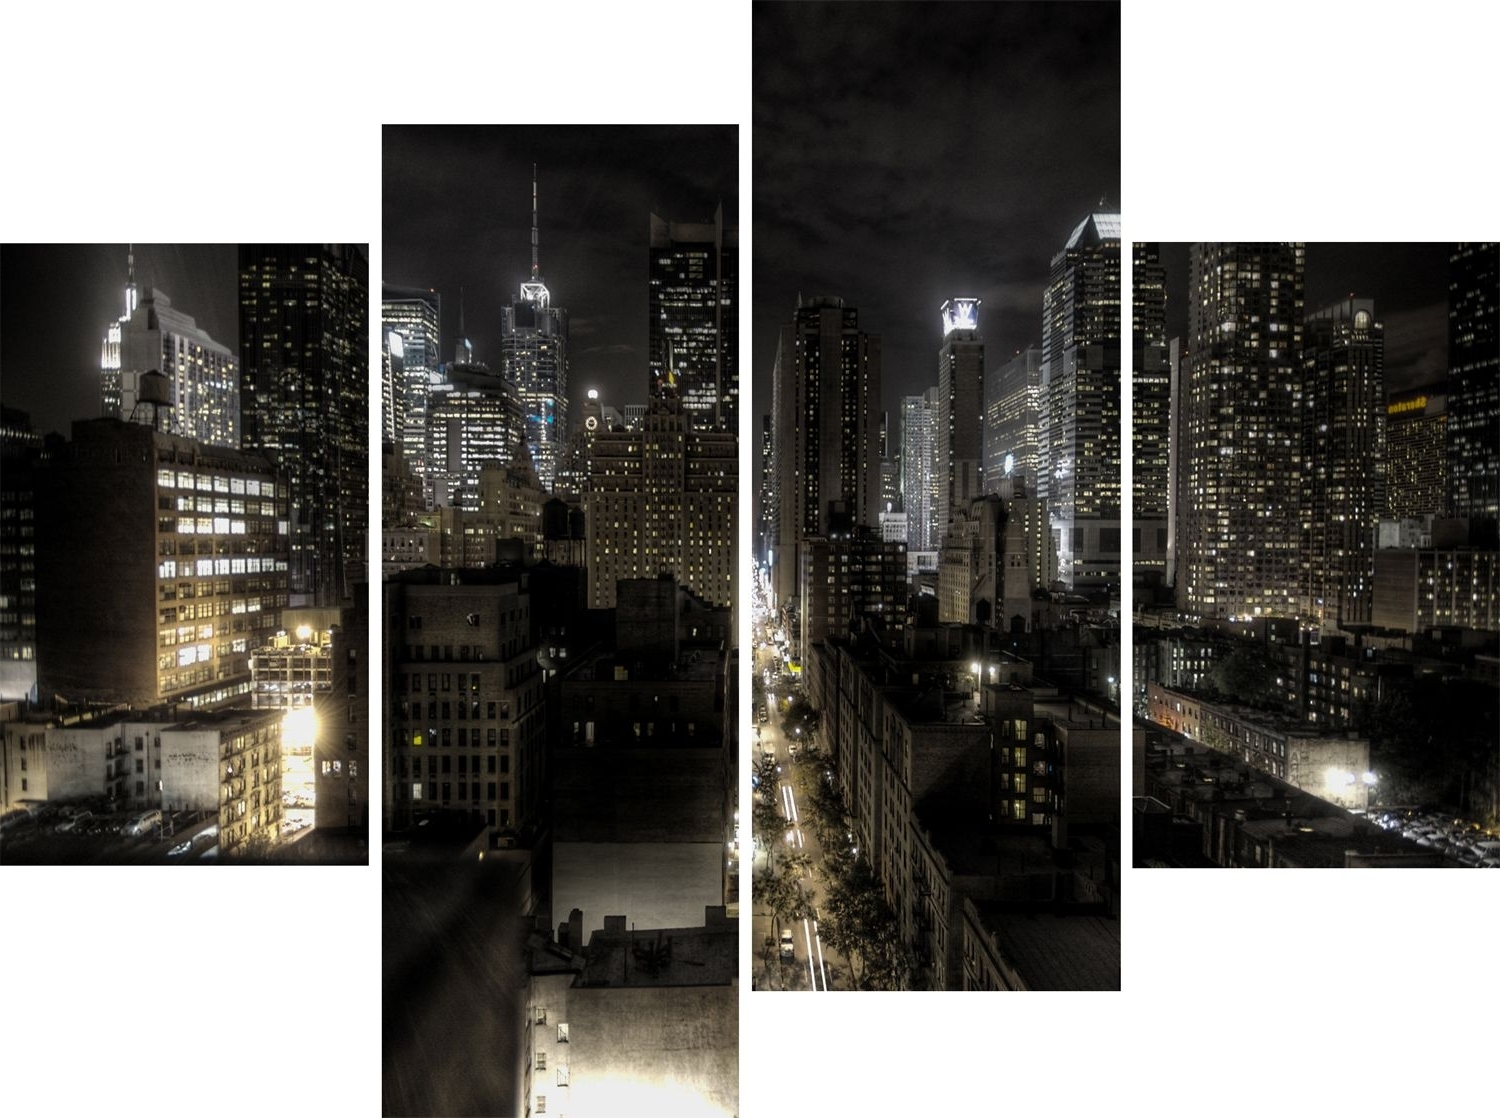 Well Known New York City Wall Art Within Wall Art Designs: New York City Wall Art Large 4 Panel New York (View 12 of 15)